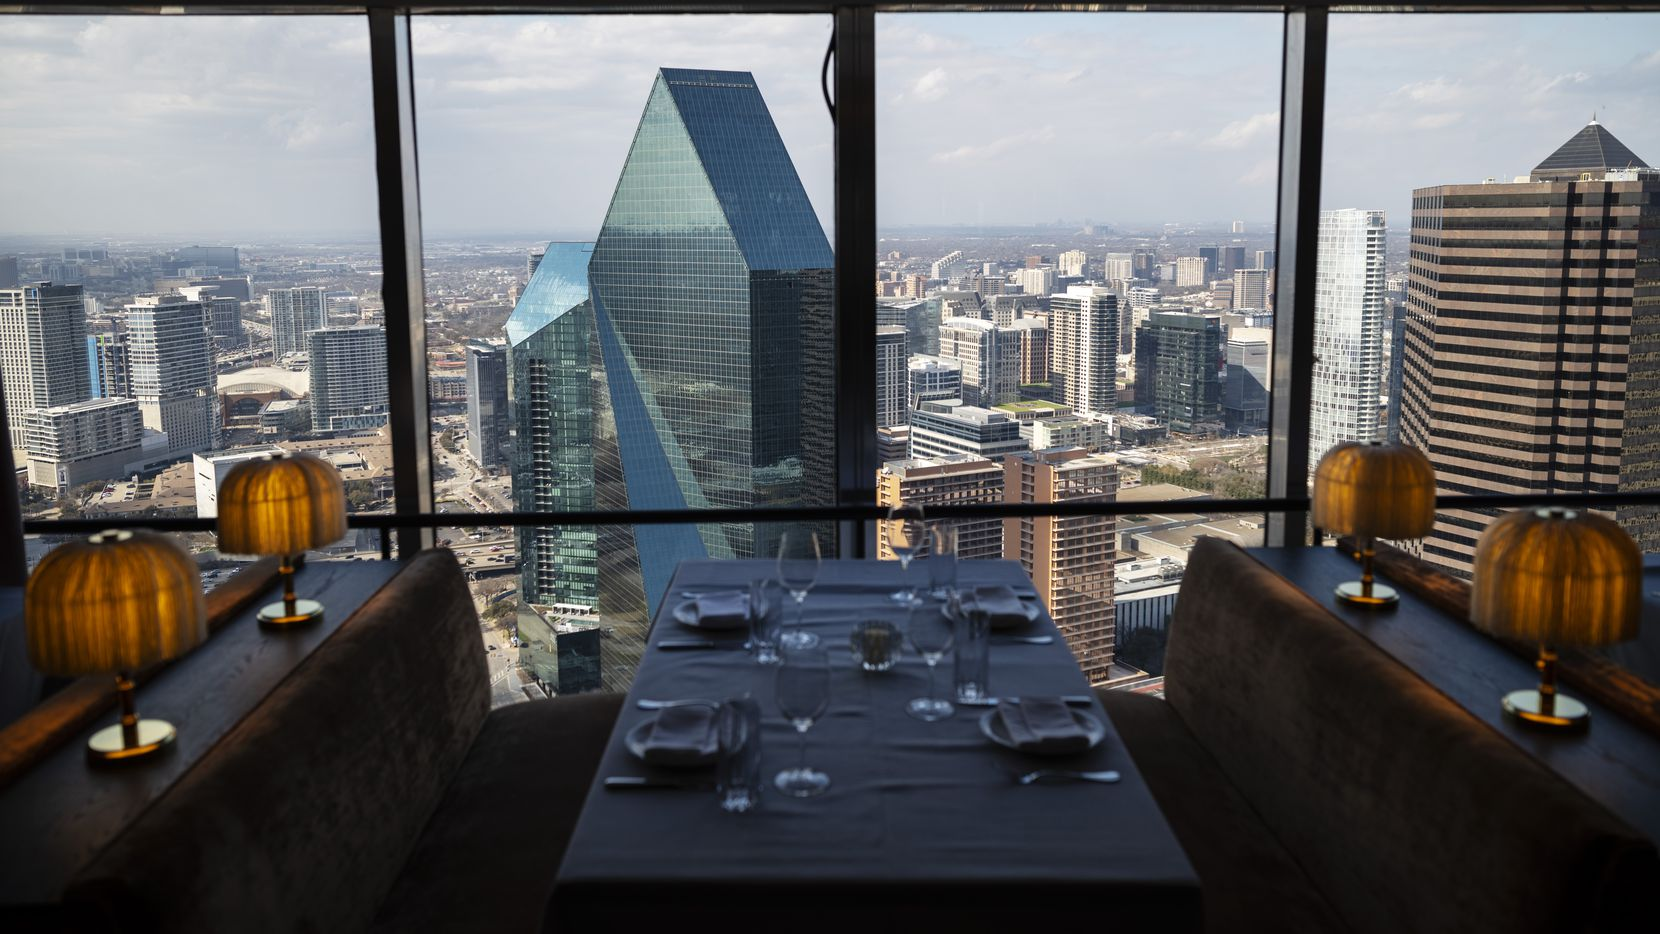 Monarch, the new restaurant on the 49th floor of The National building in downtown Dallas, has views of the city from every side.